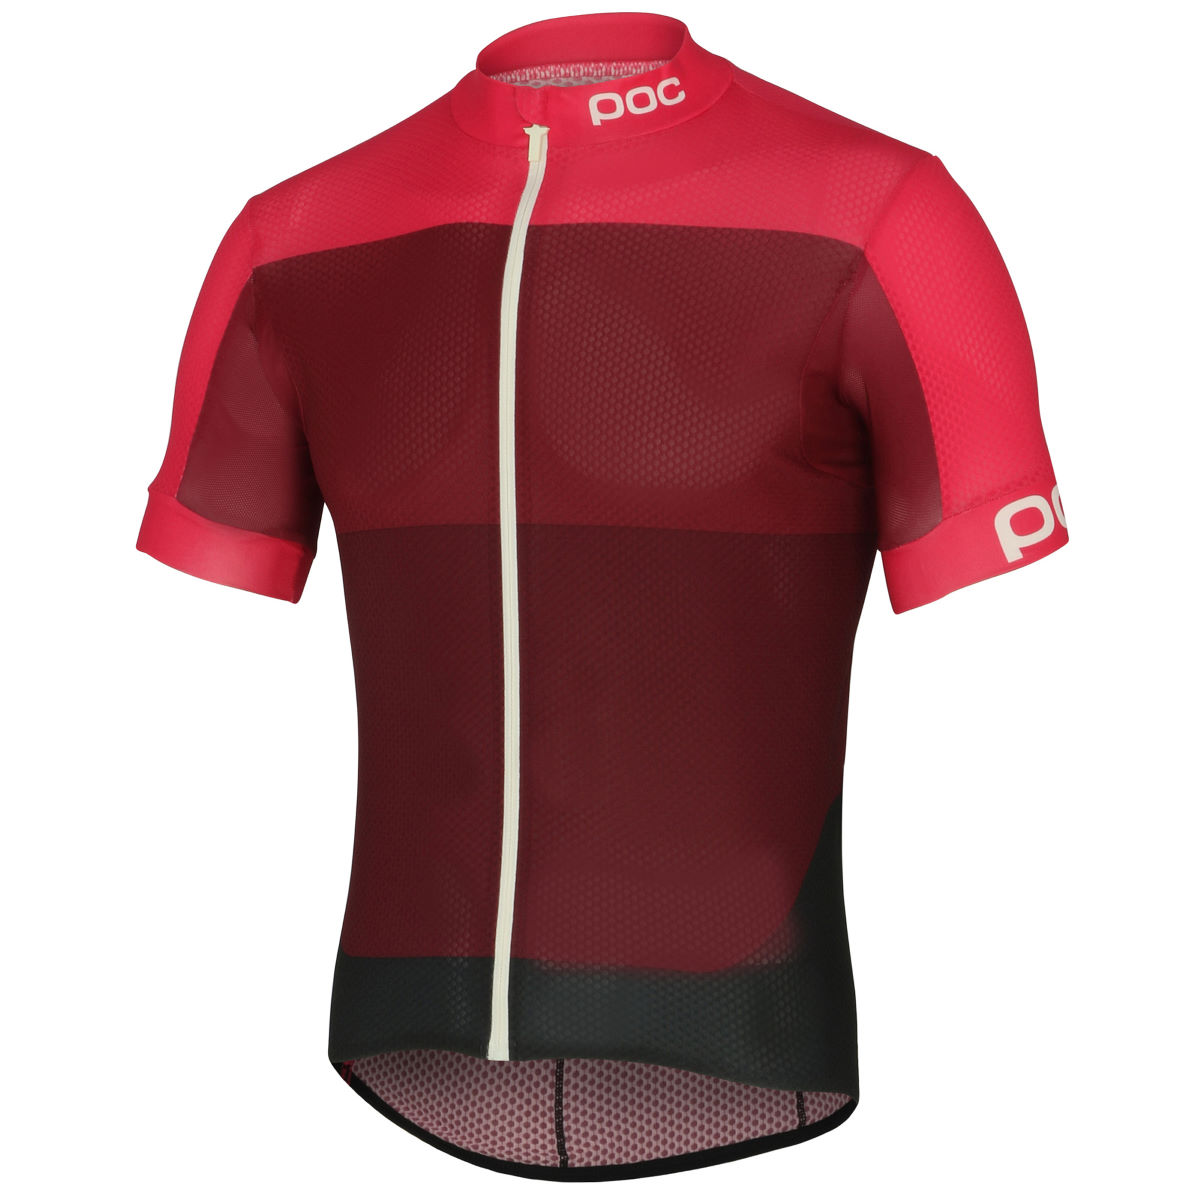 Maillot POC Fondo Light - Extra Large Sulfate Pink Maillots vélo à manches courtes